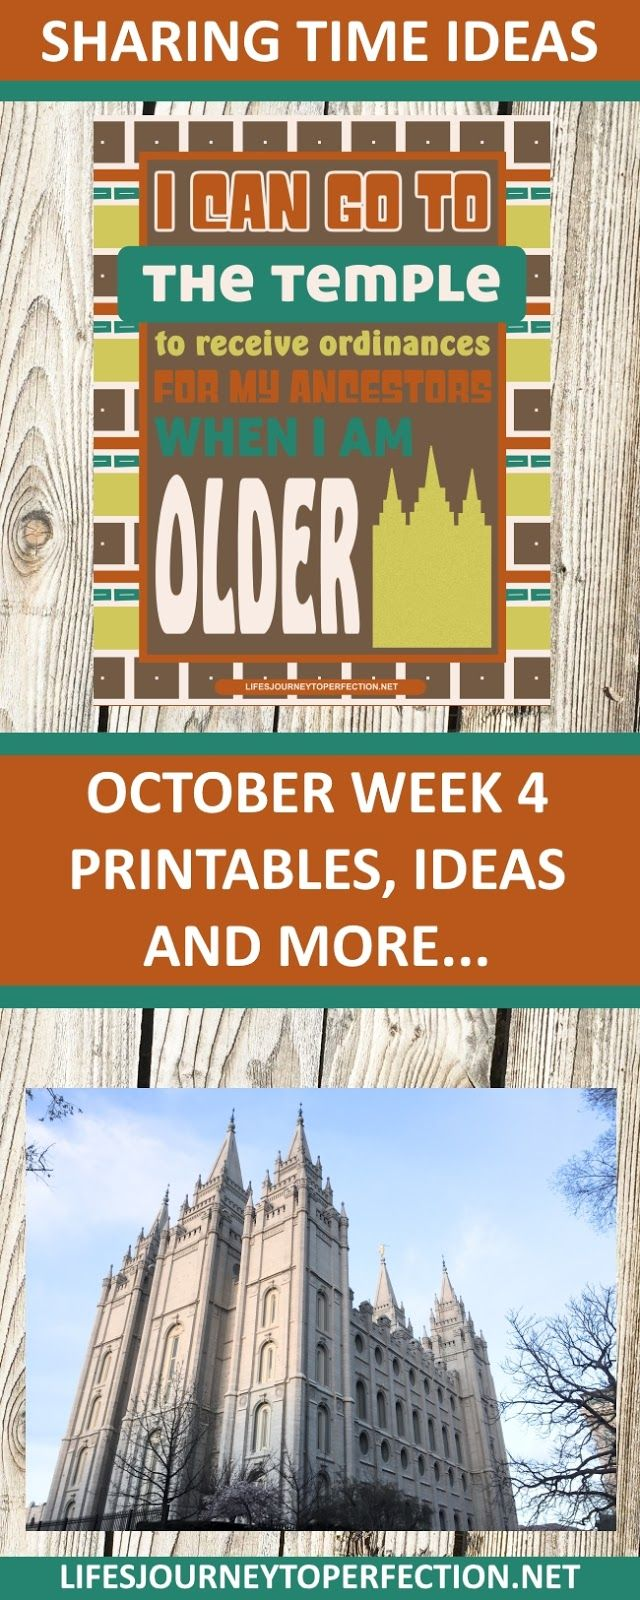 OCTOBER WEEK 4 SHARING TIME IDEAS, PRINTABLES AND MORE: I CAN GO TO THE TEMPLE TO RECEIVE ORDINANCES FOR MY ANCESTORS WHEN I AM OLDER